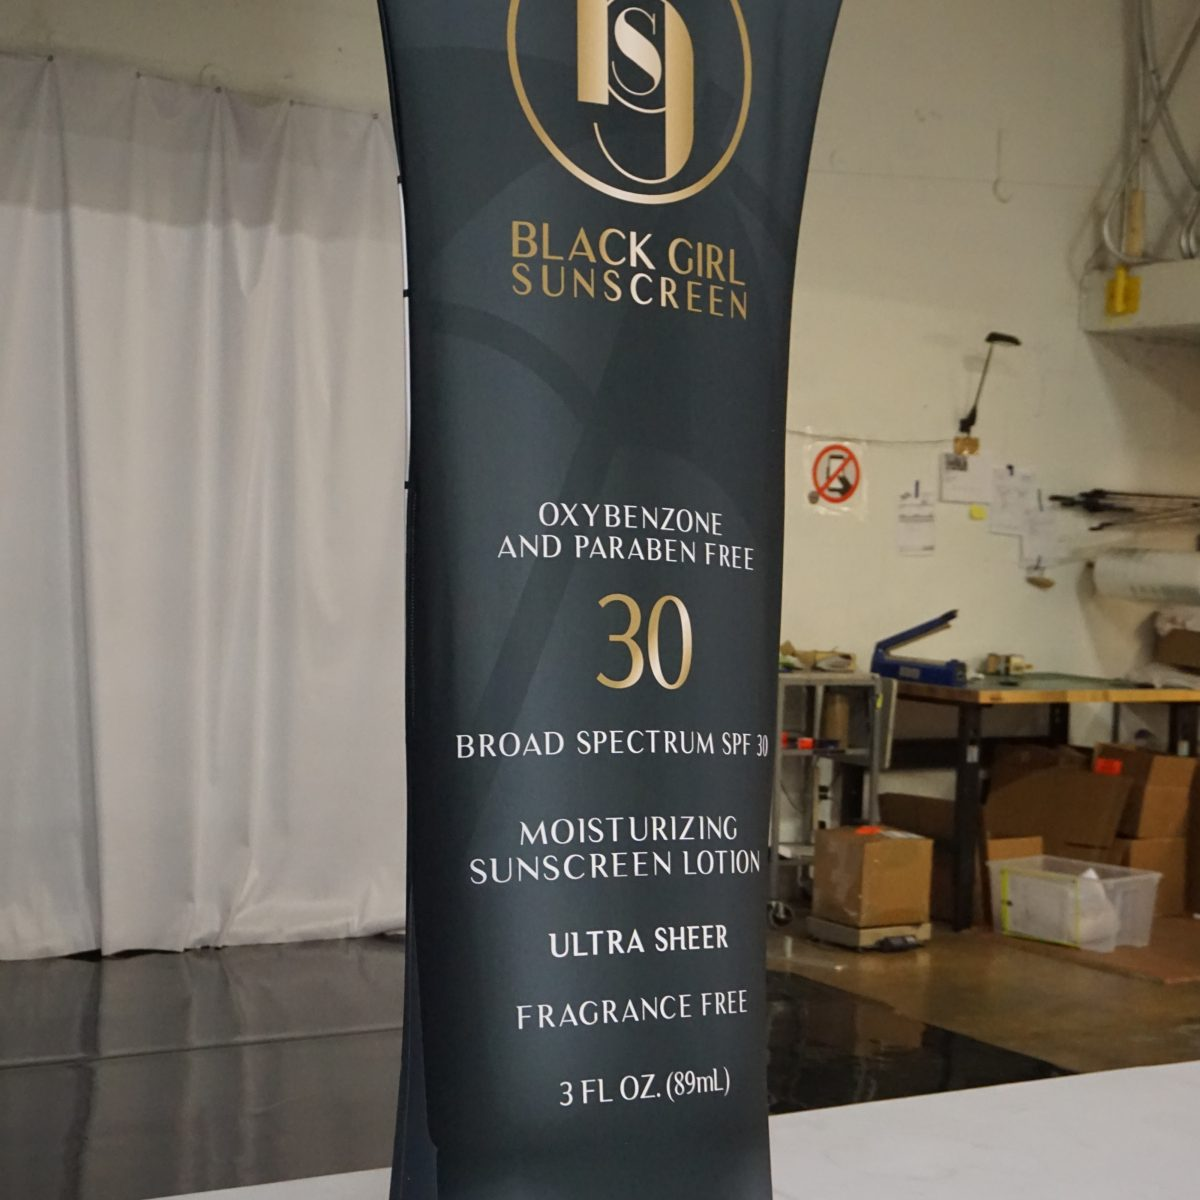 28) Black Girl Sunscreen Tension Fabric Banner Stand - 3